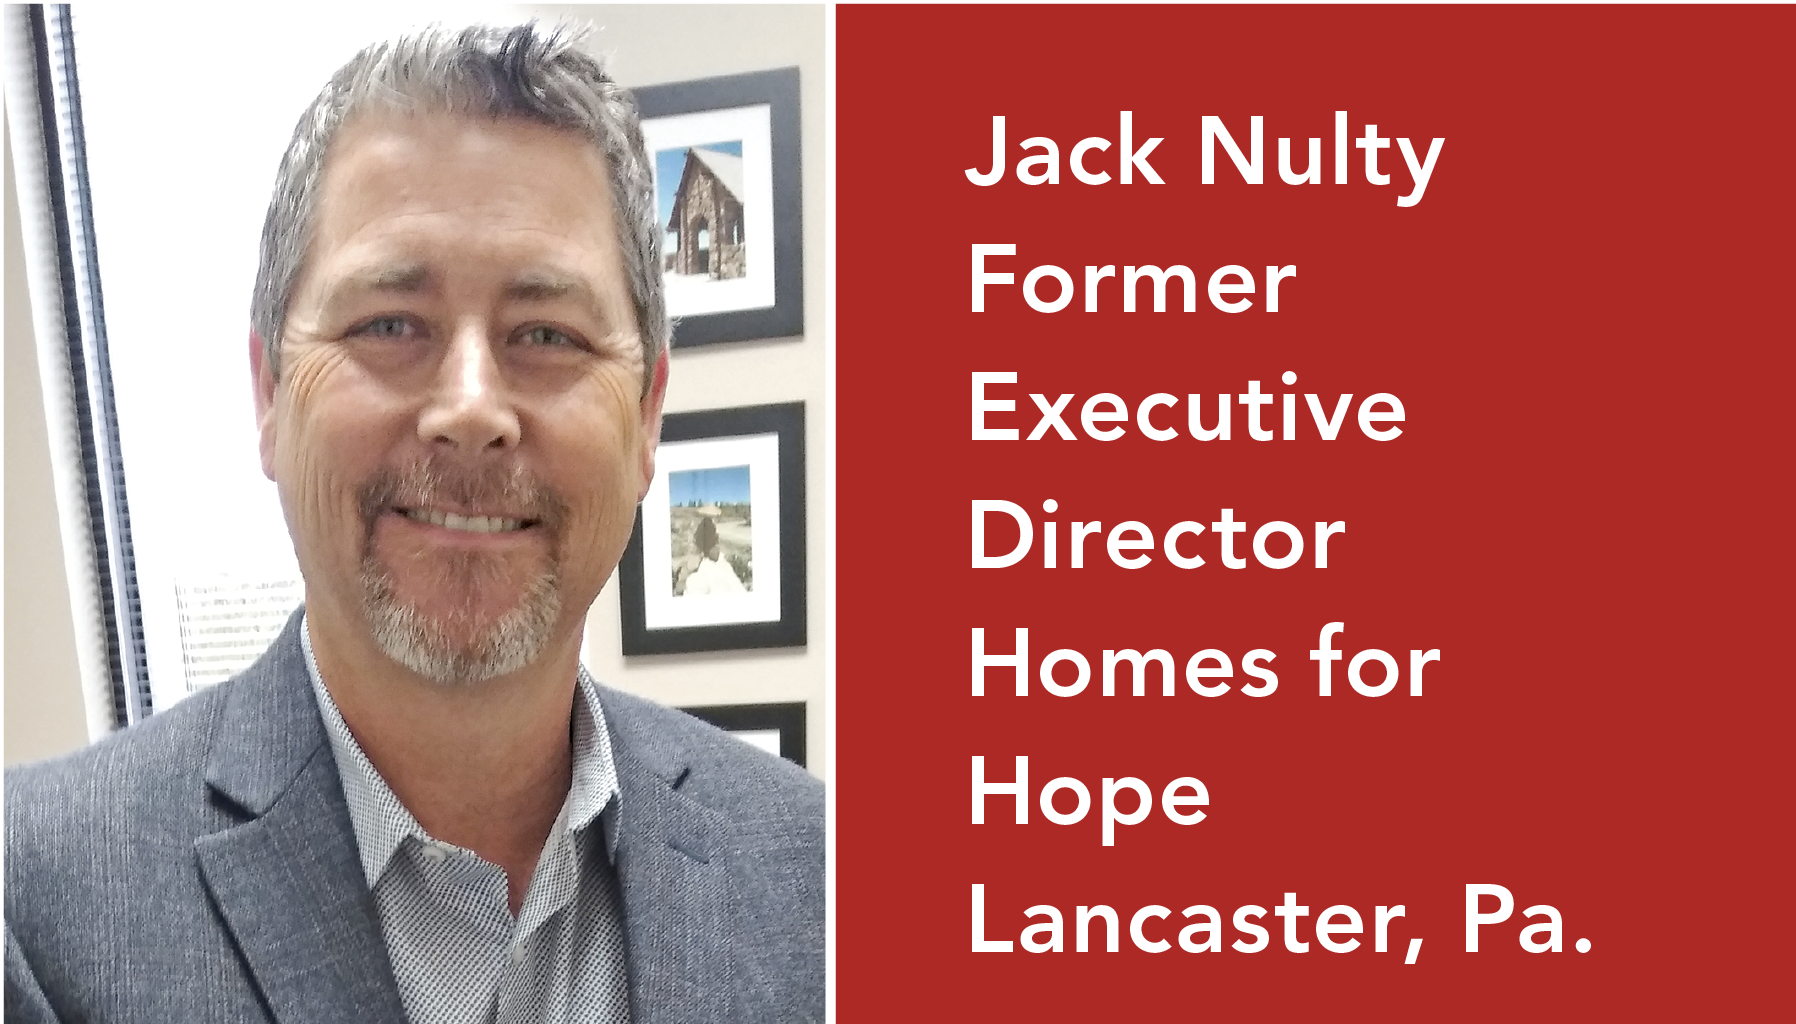 Jack Nulty is the former executive director of nonprofit Homes for Hope-microfinance